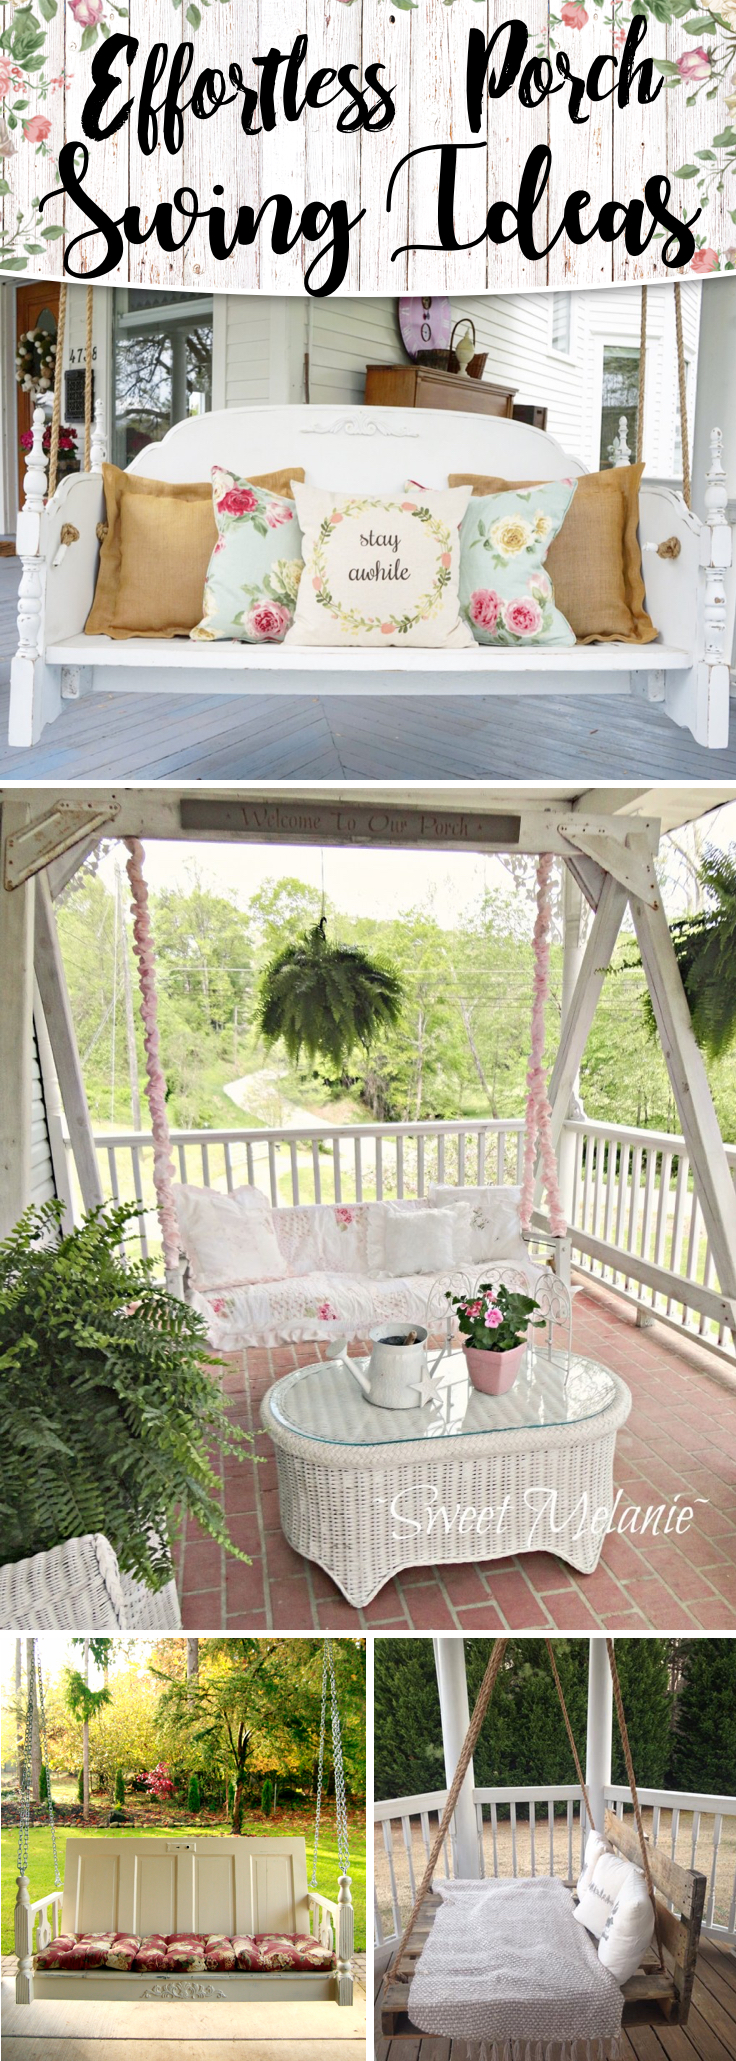 Effortless Porch Swing Ideas